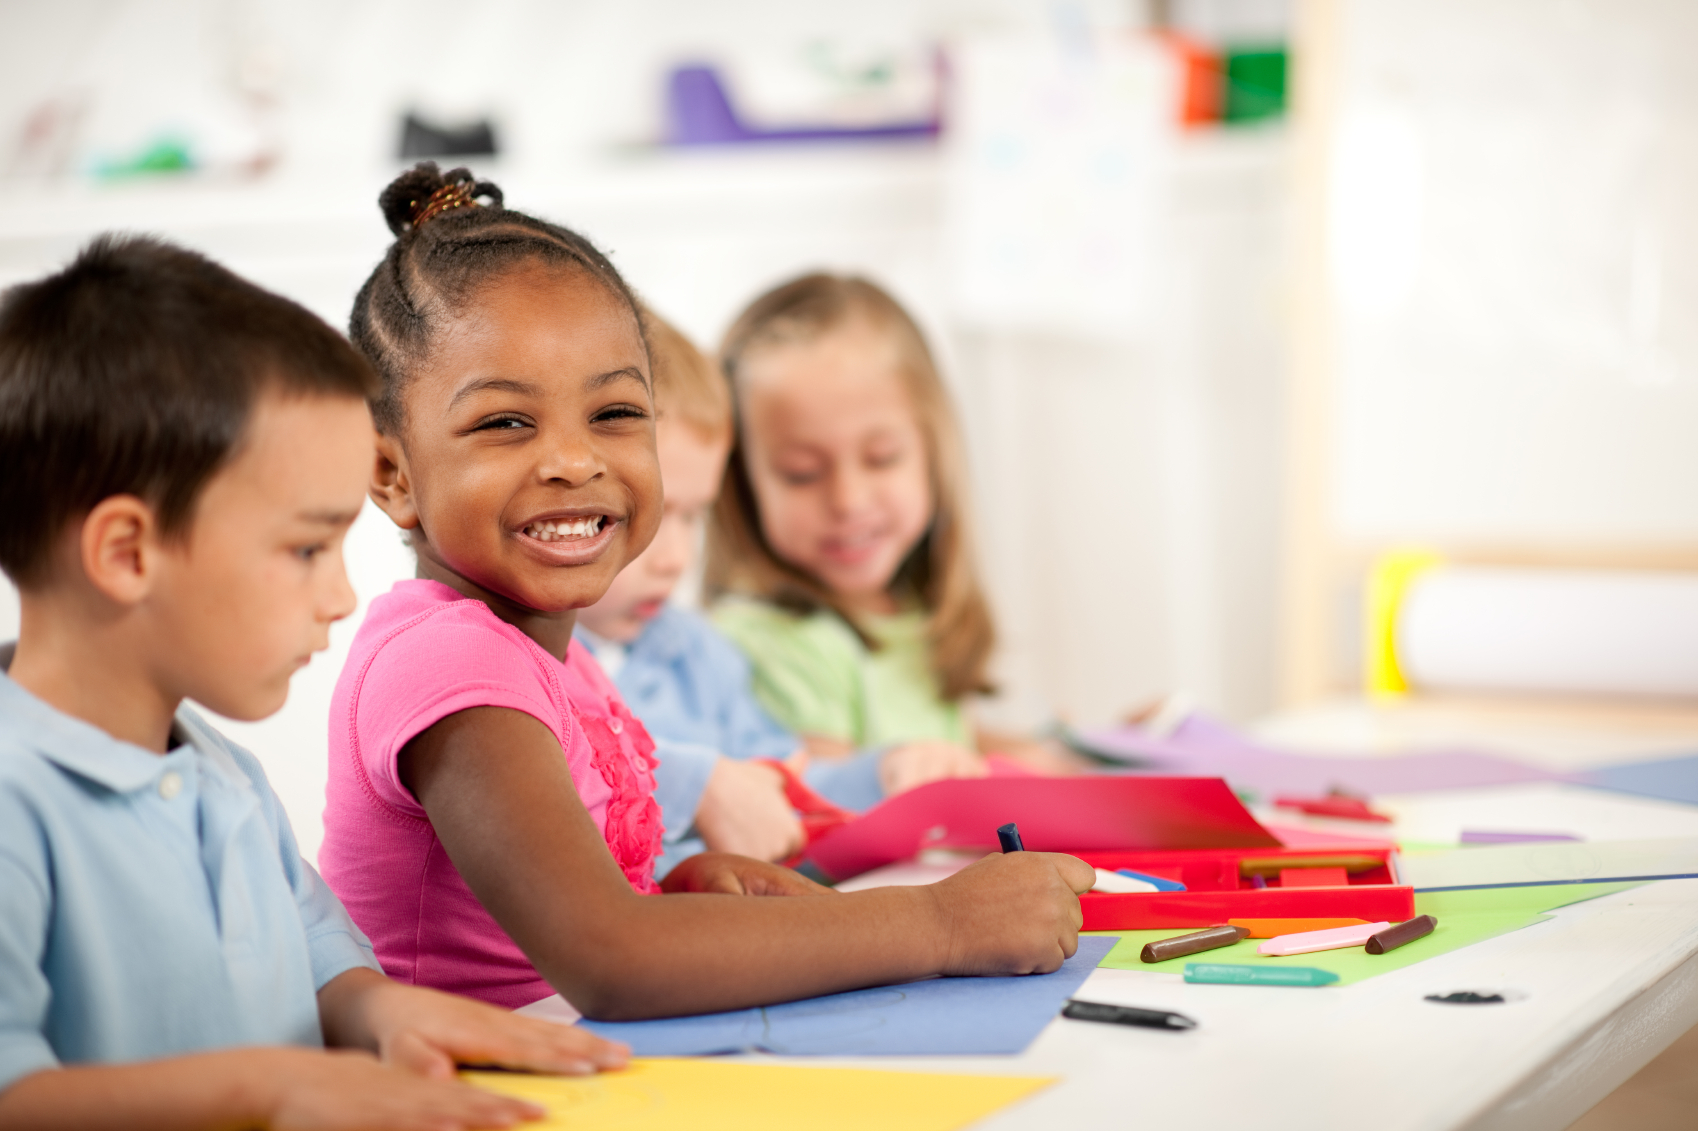 does your child have to go to preschool top holmdel preschool amp your child s well being hafha 397